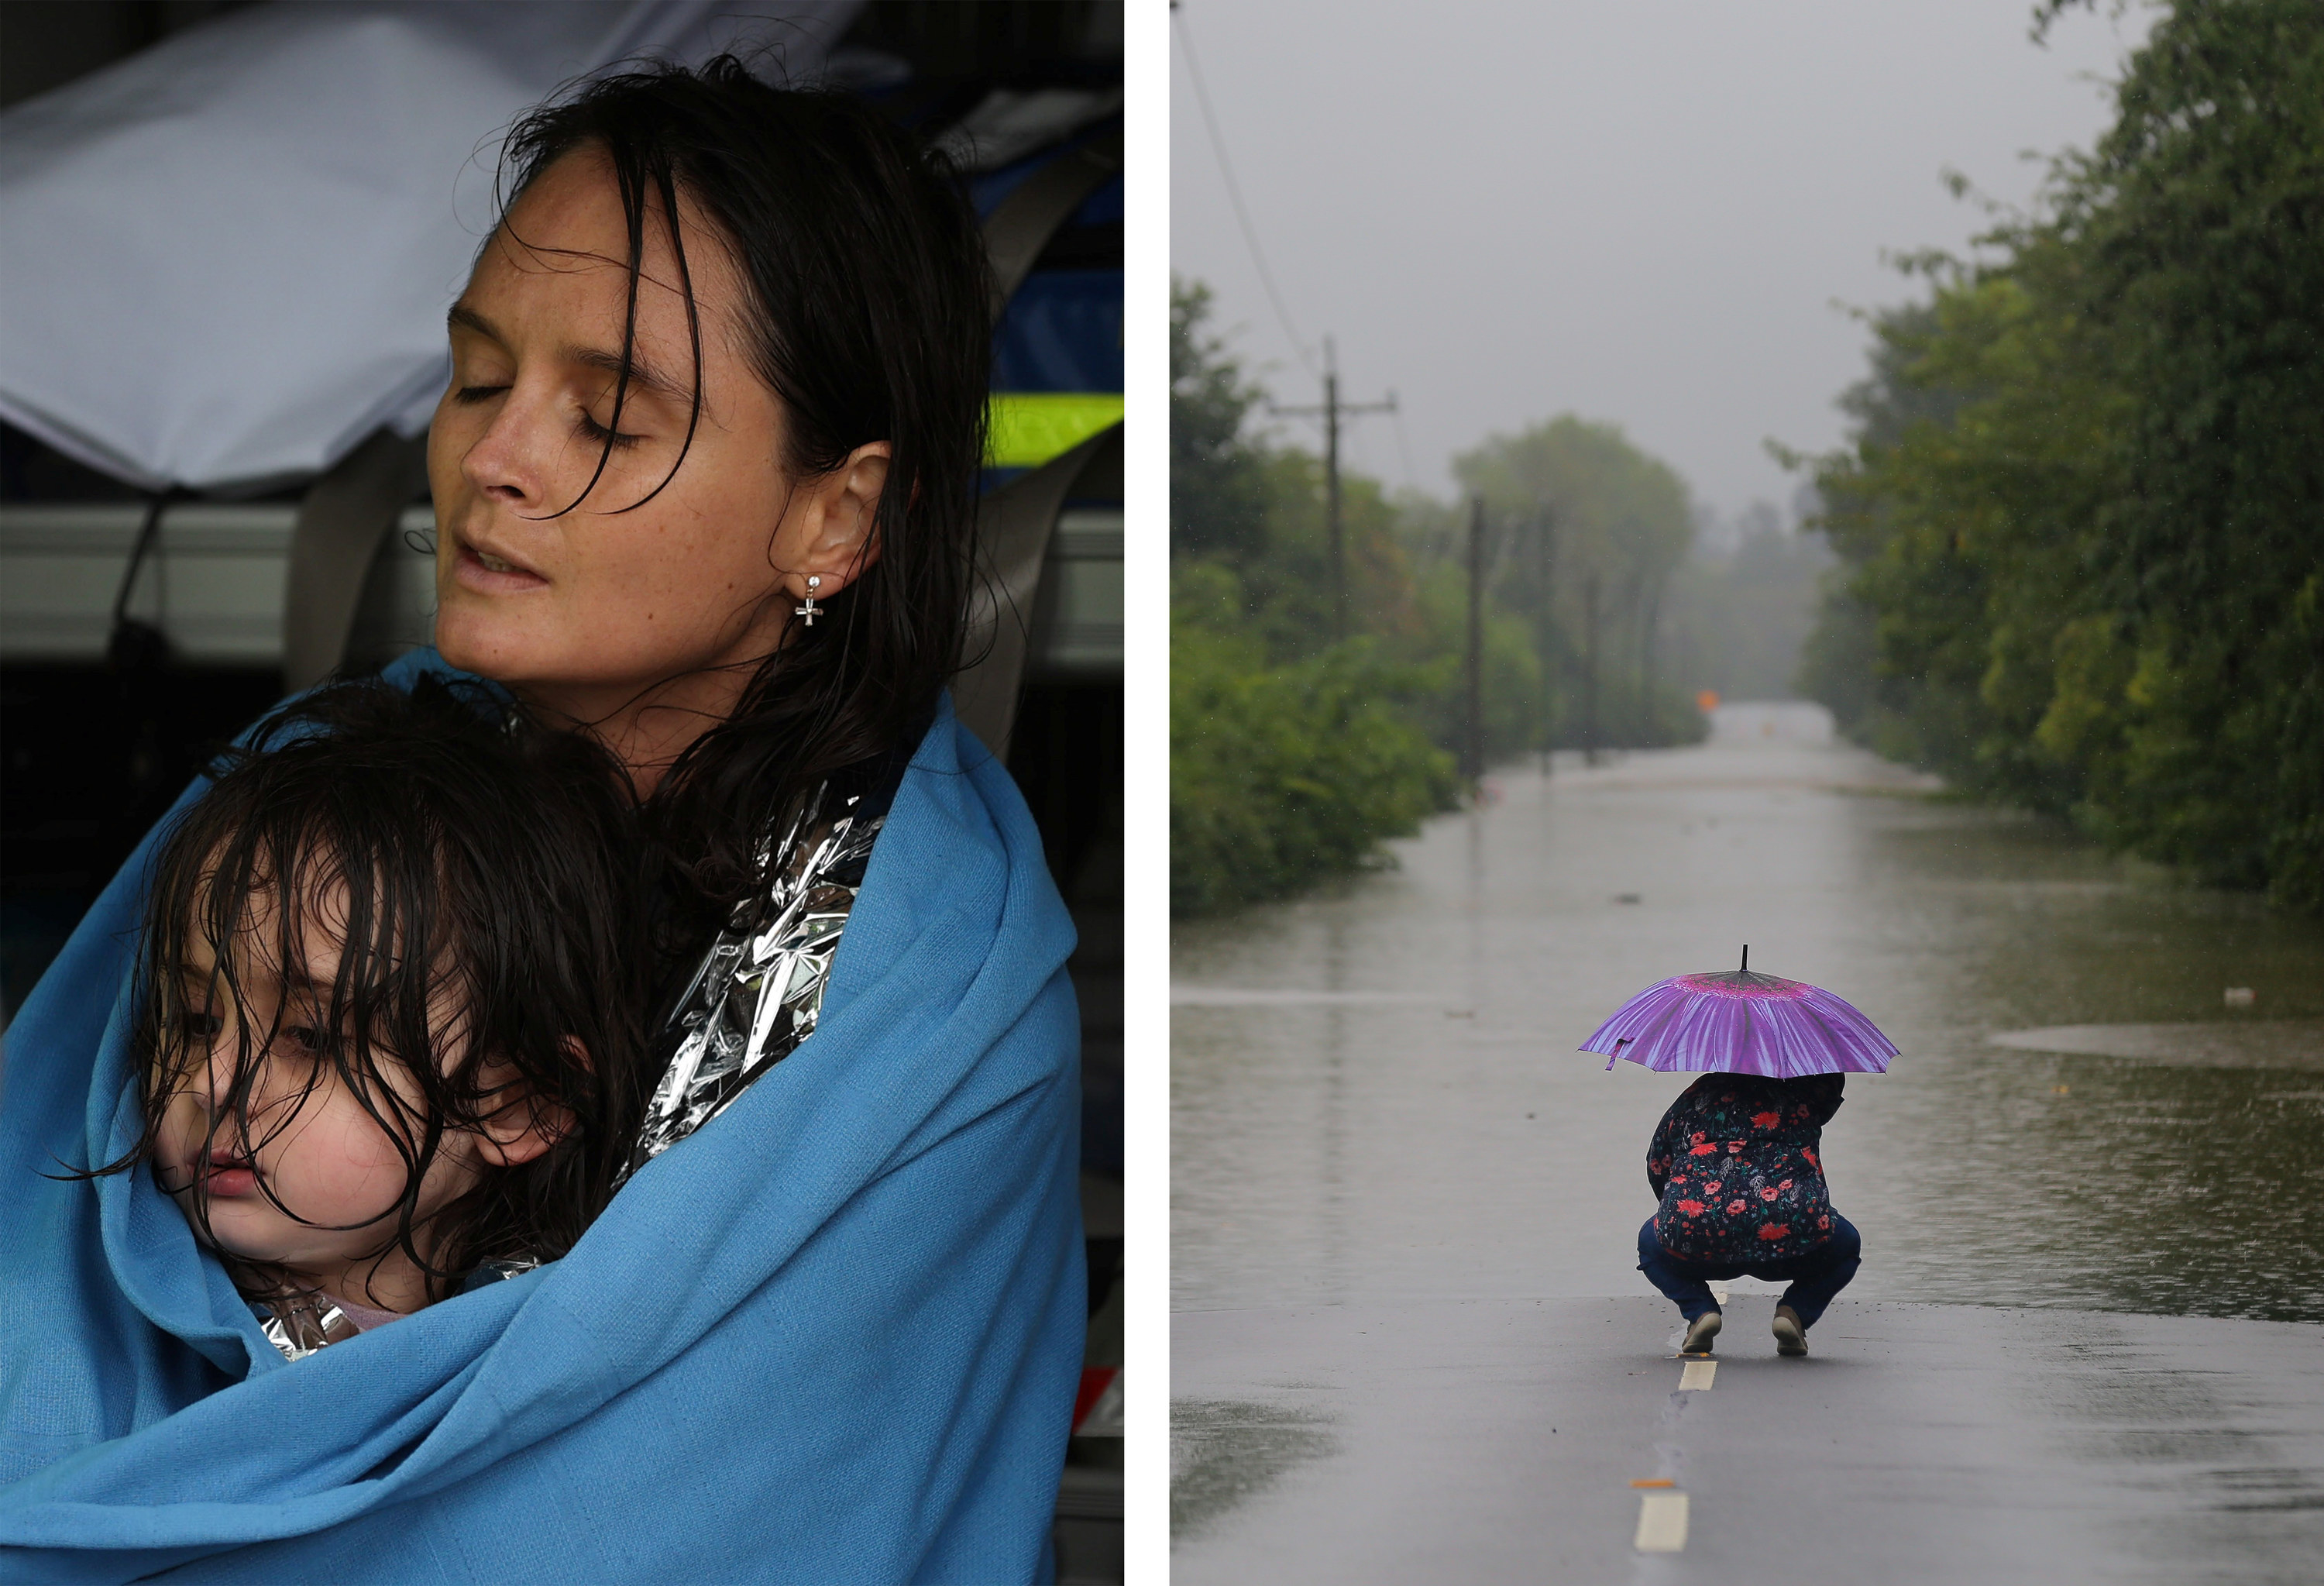 Left, a woman and child are wet and wrapped in a blanket, right a woman crouches down in front of flood waters at the end of a flooded road